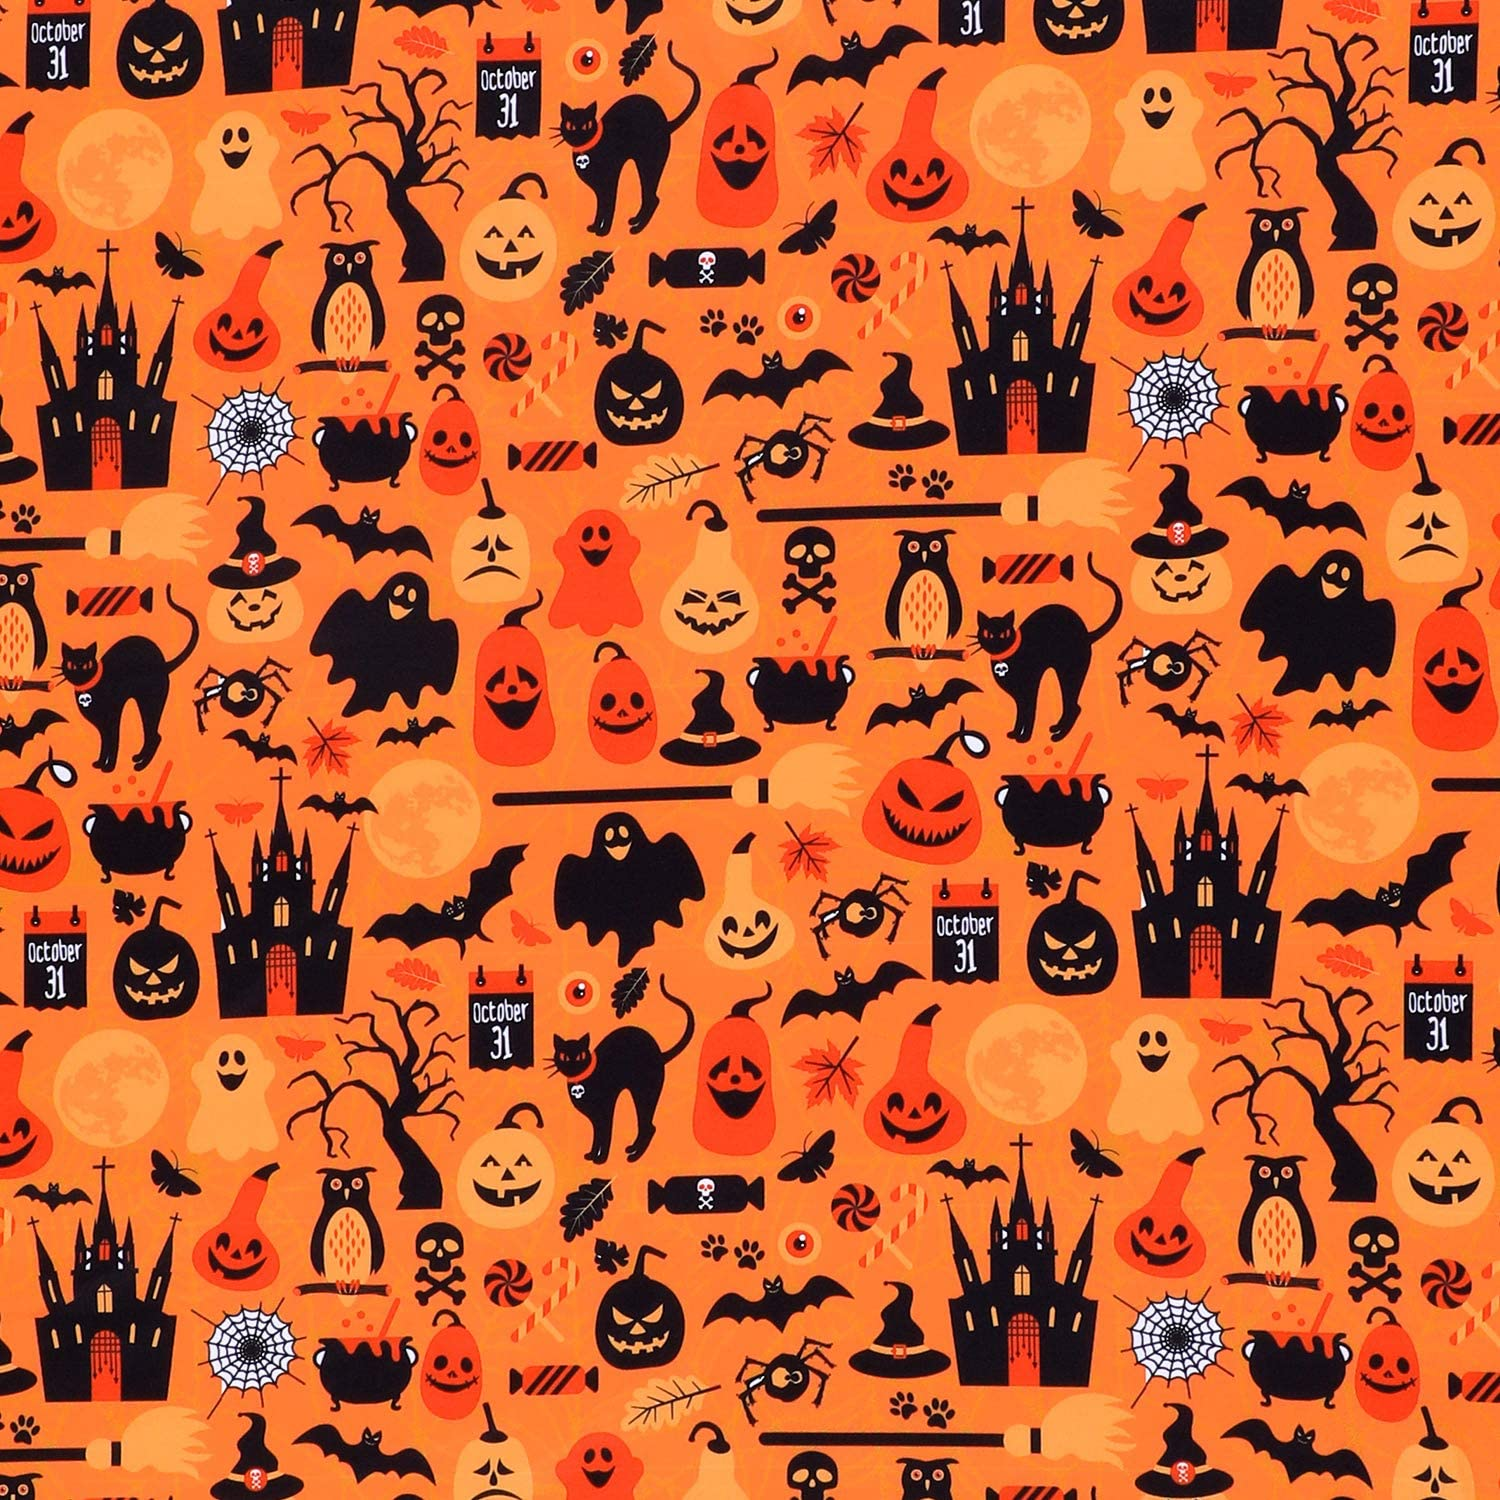 Halloween Fabric 1 Yard Ghost Pumpkin Cats Pattern Halloween Orange Printed Fabric for Sewing Quilting Apparel Crafts Home Decor Supplies (1 Pieces)